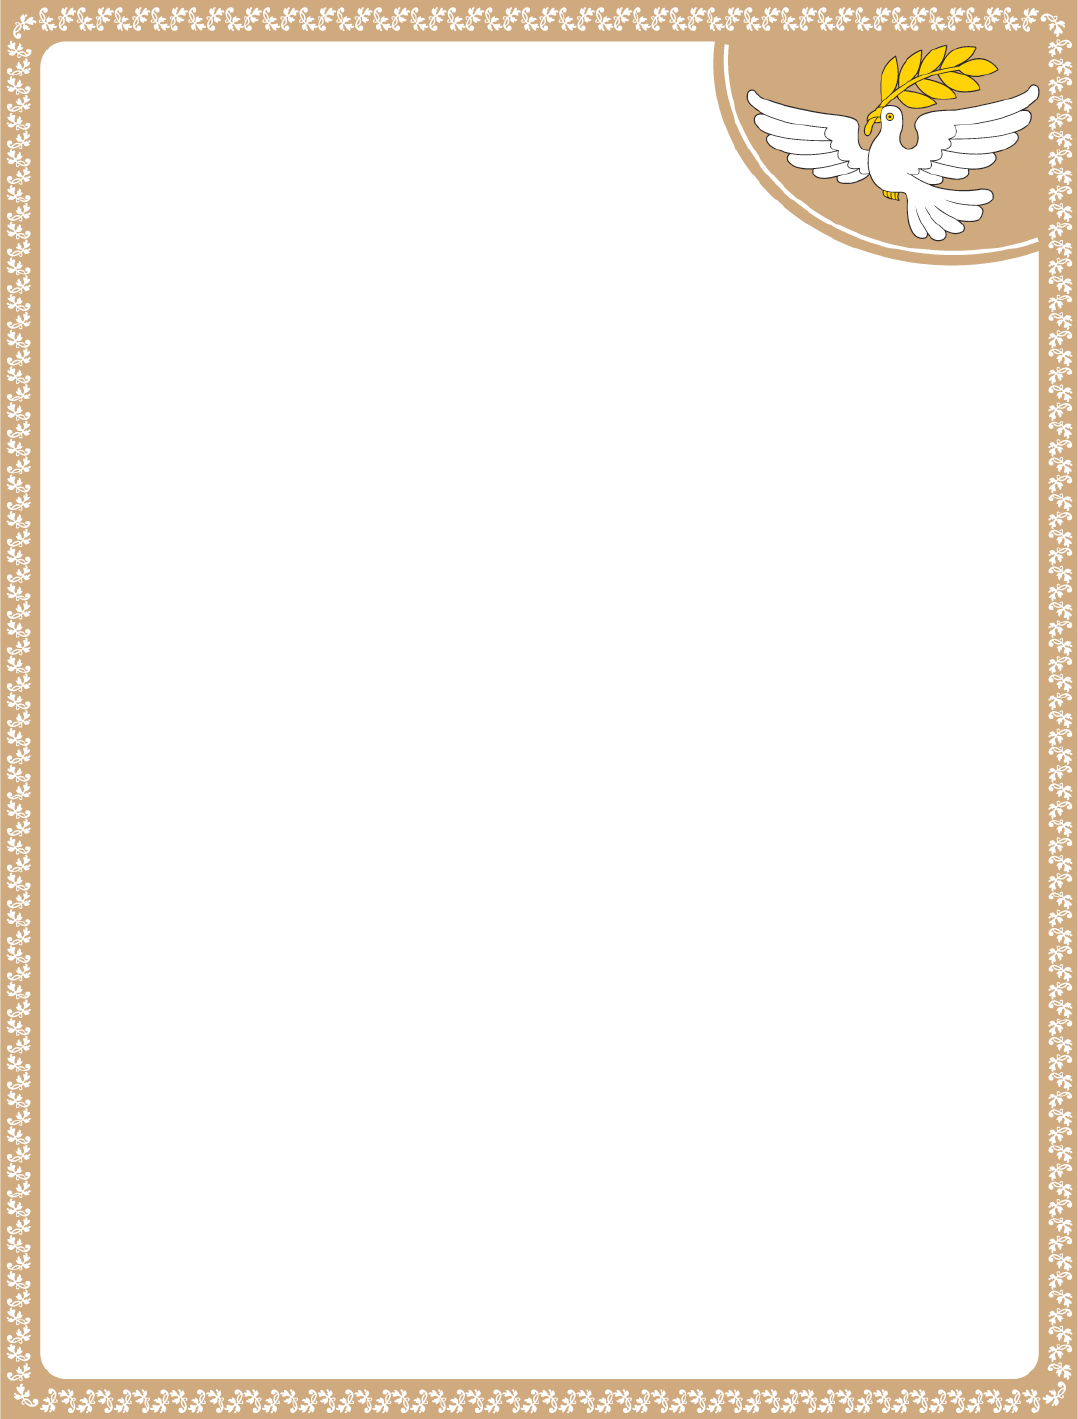 Download Printable Word Dove Letterhead Template For Free For Free